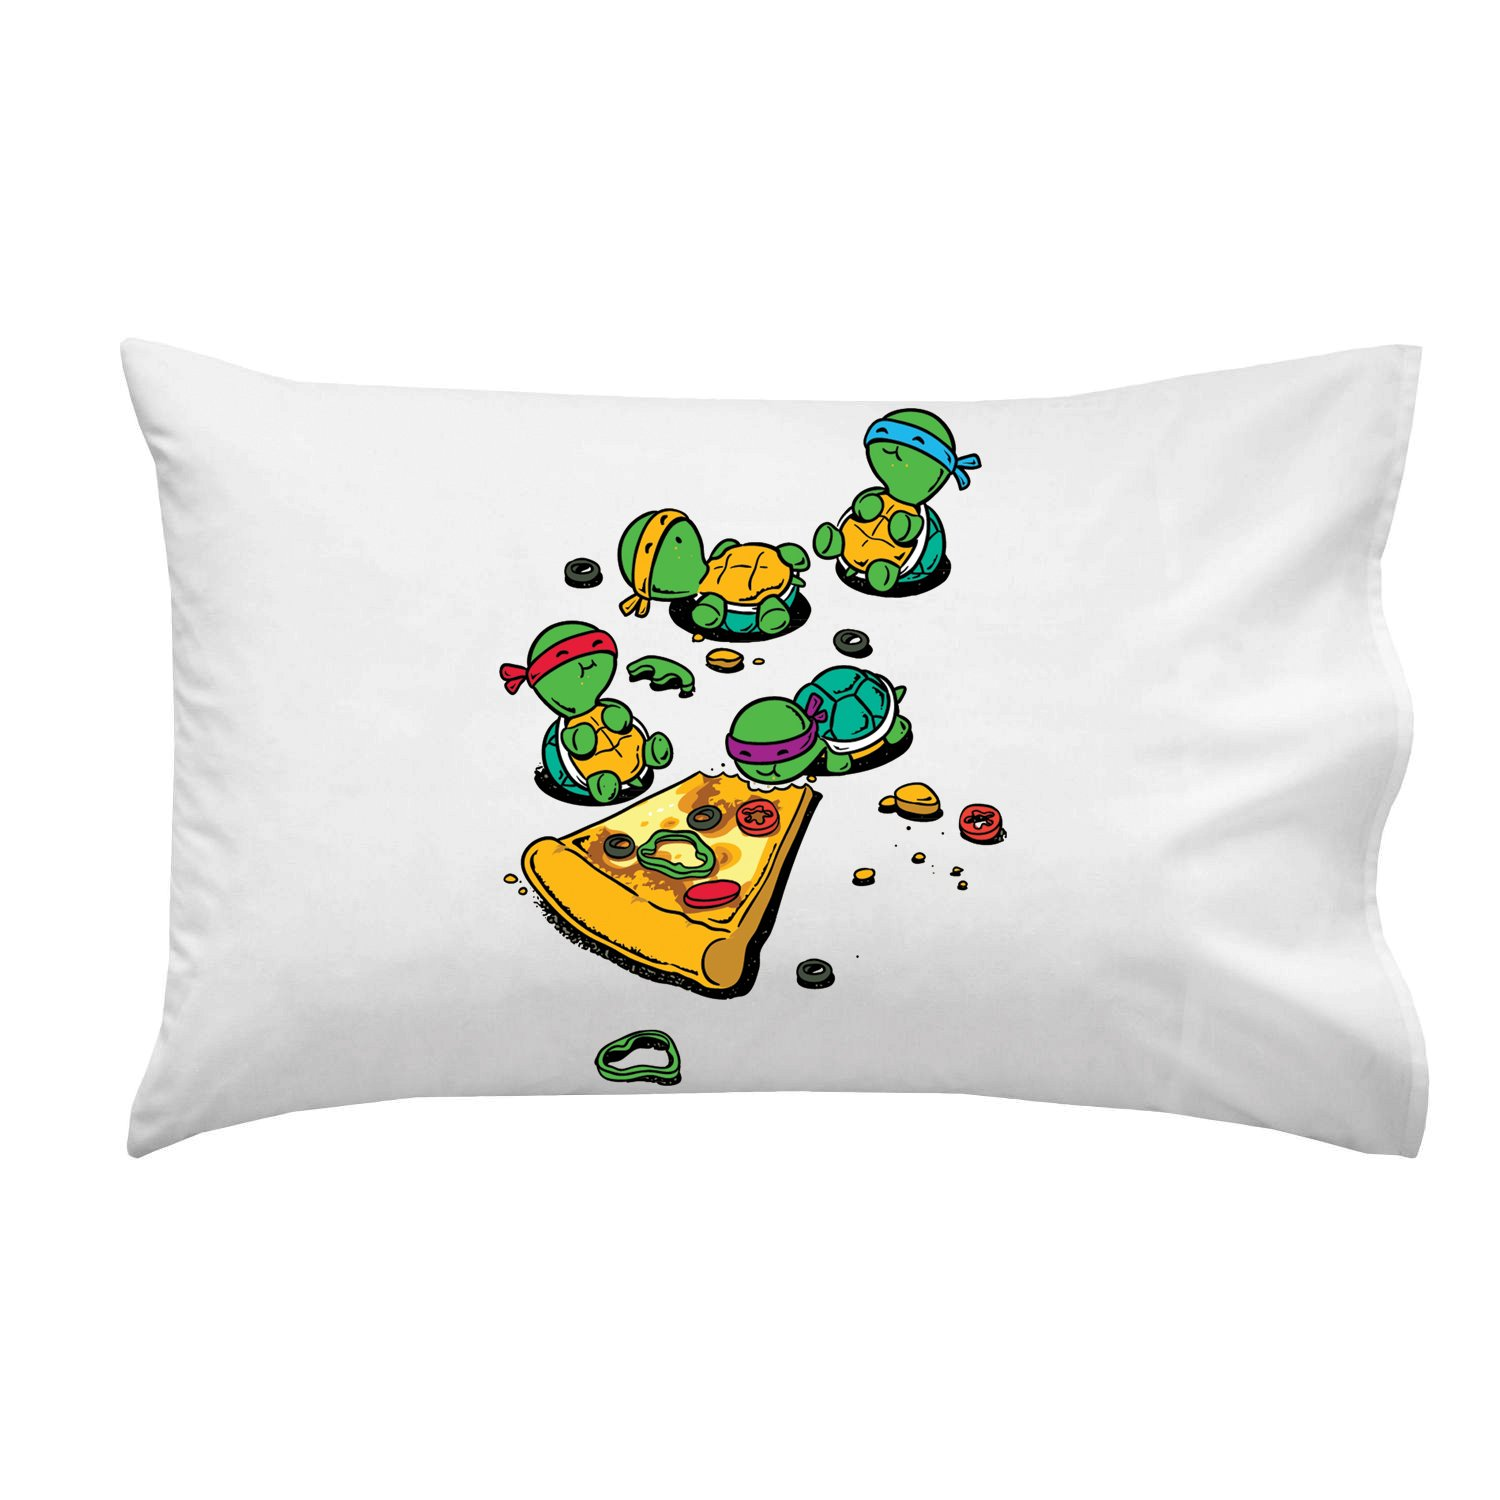 ''Pizza Lover'' TV Show Cartoon Movie Parody w/ Turtles Eating Pizza - Pillow Case Single Pillowcase